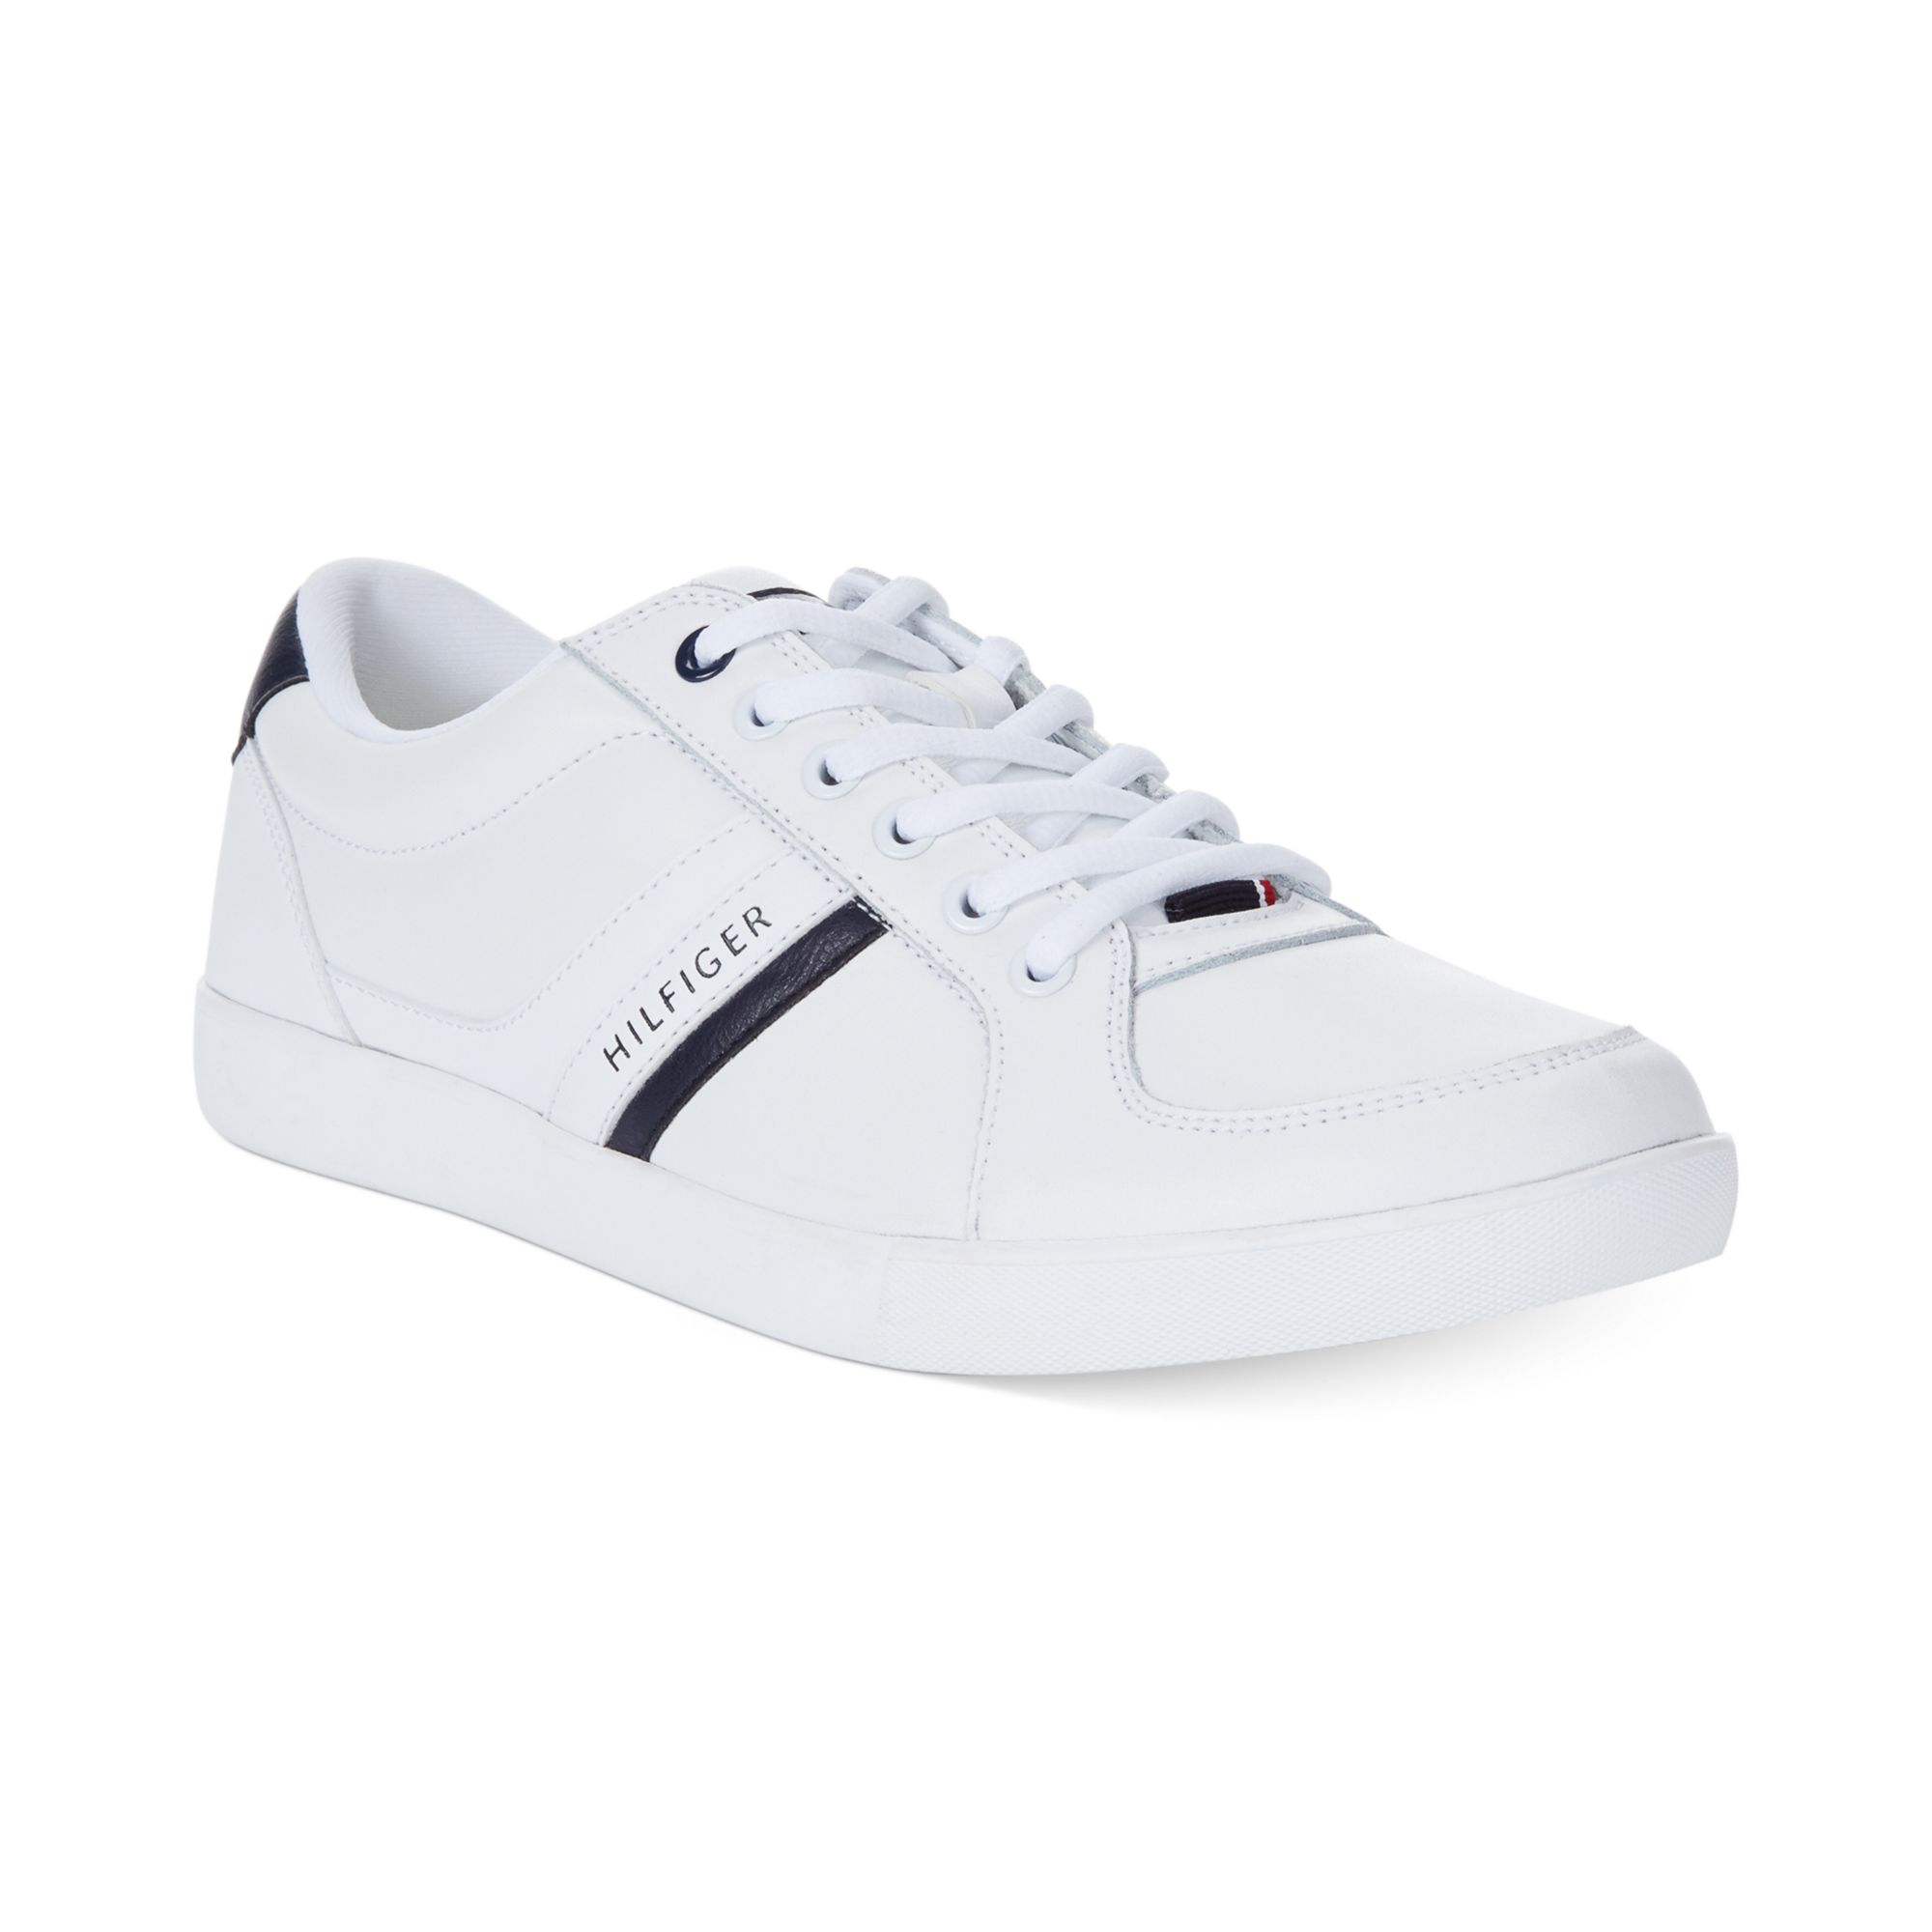 tommy hilfiger thorne sneakers in white for men lyst. Black Bedroom Furniture Sets. Home Design Ideas